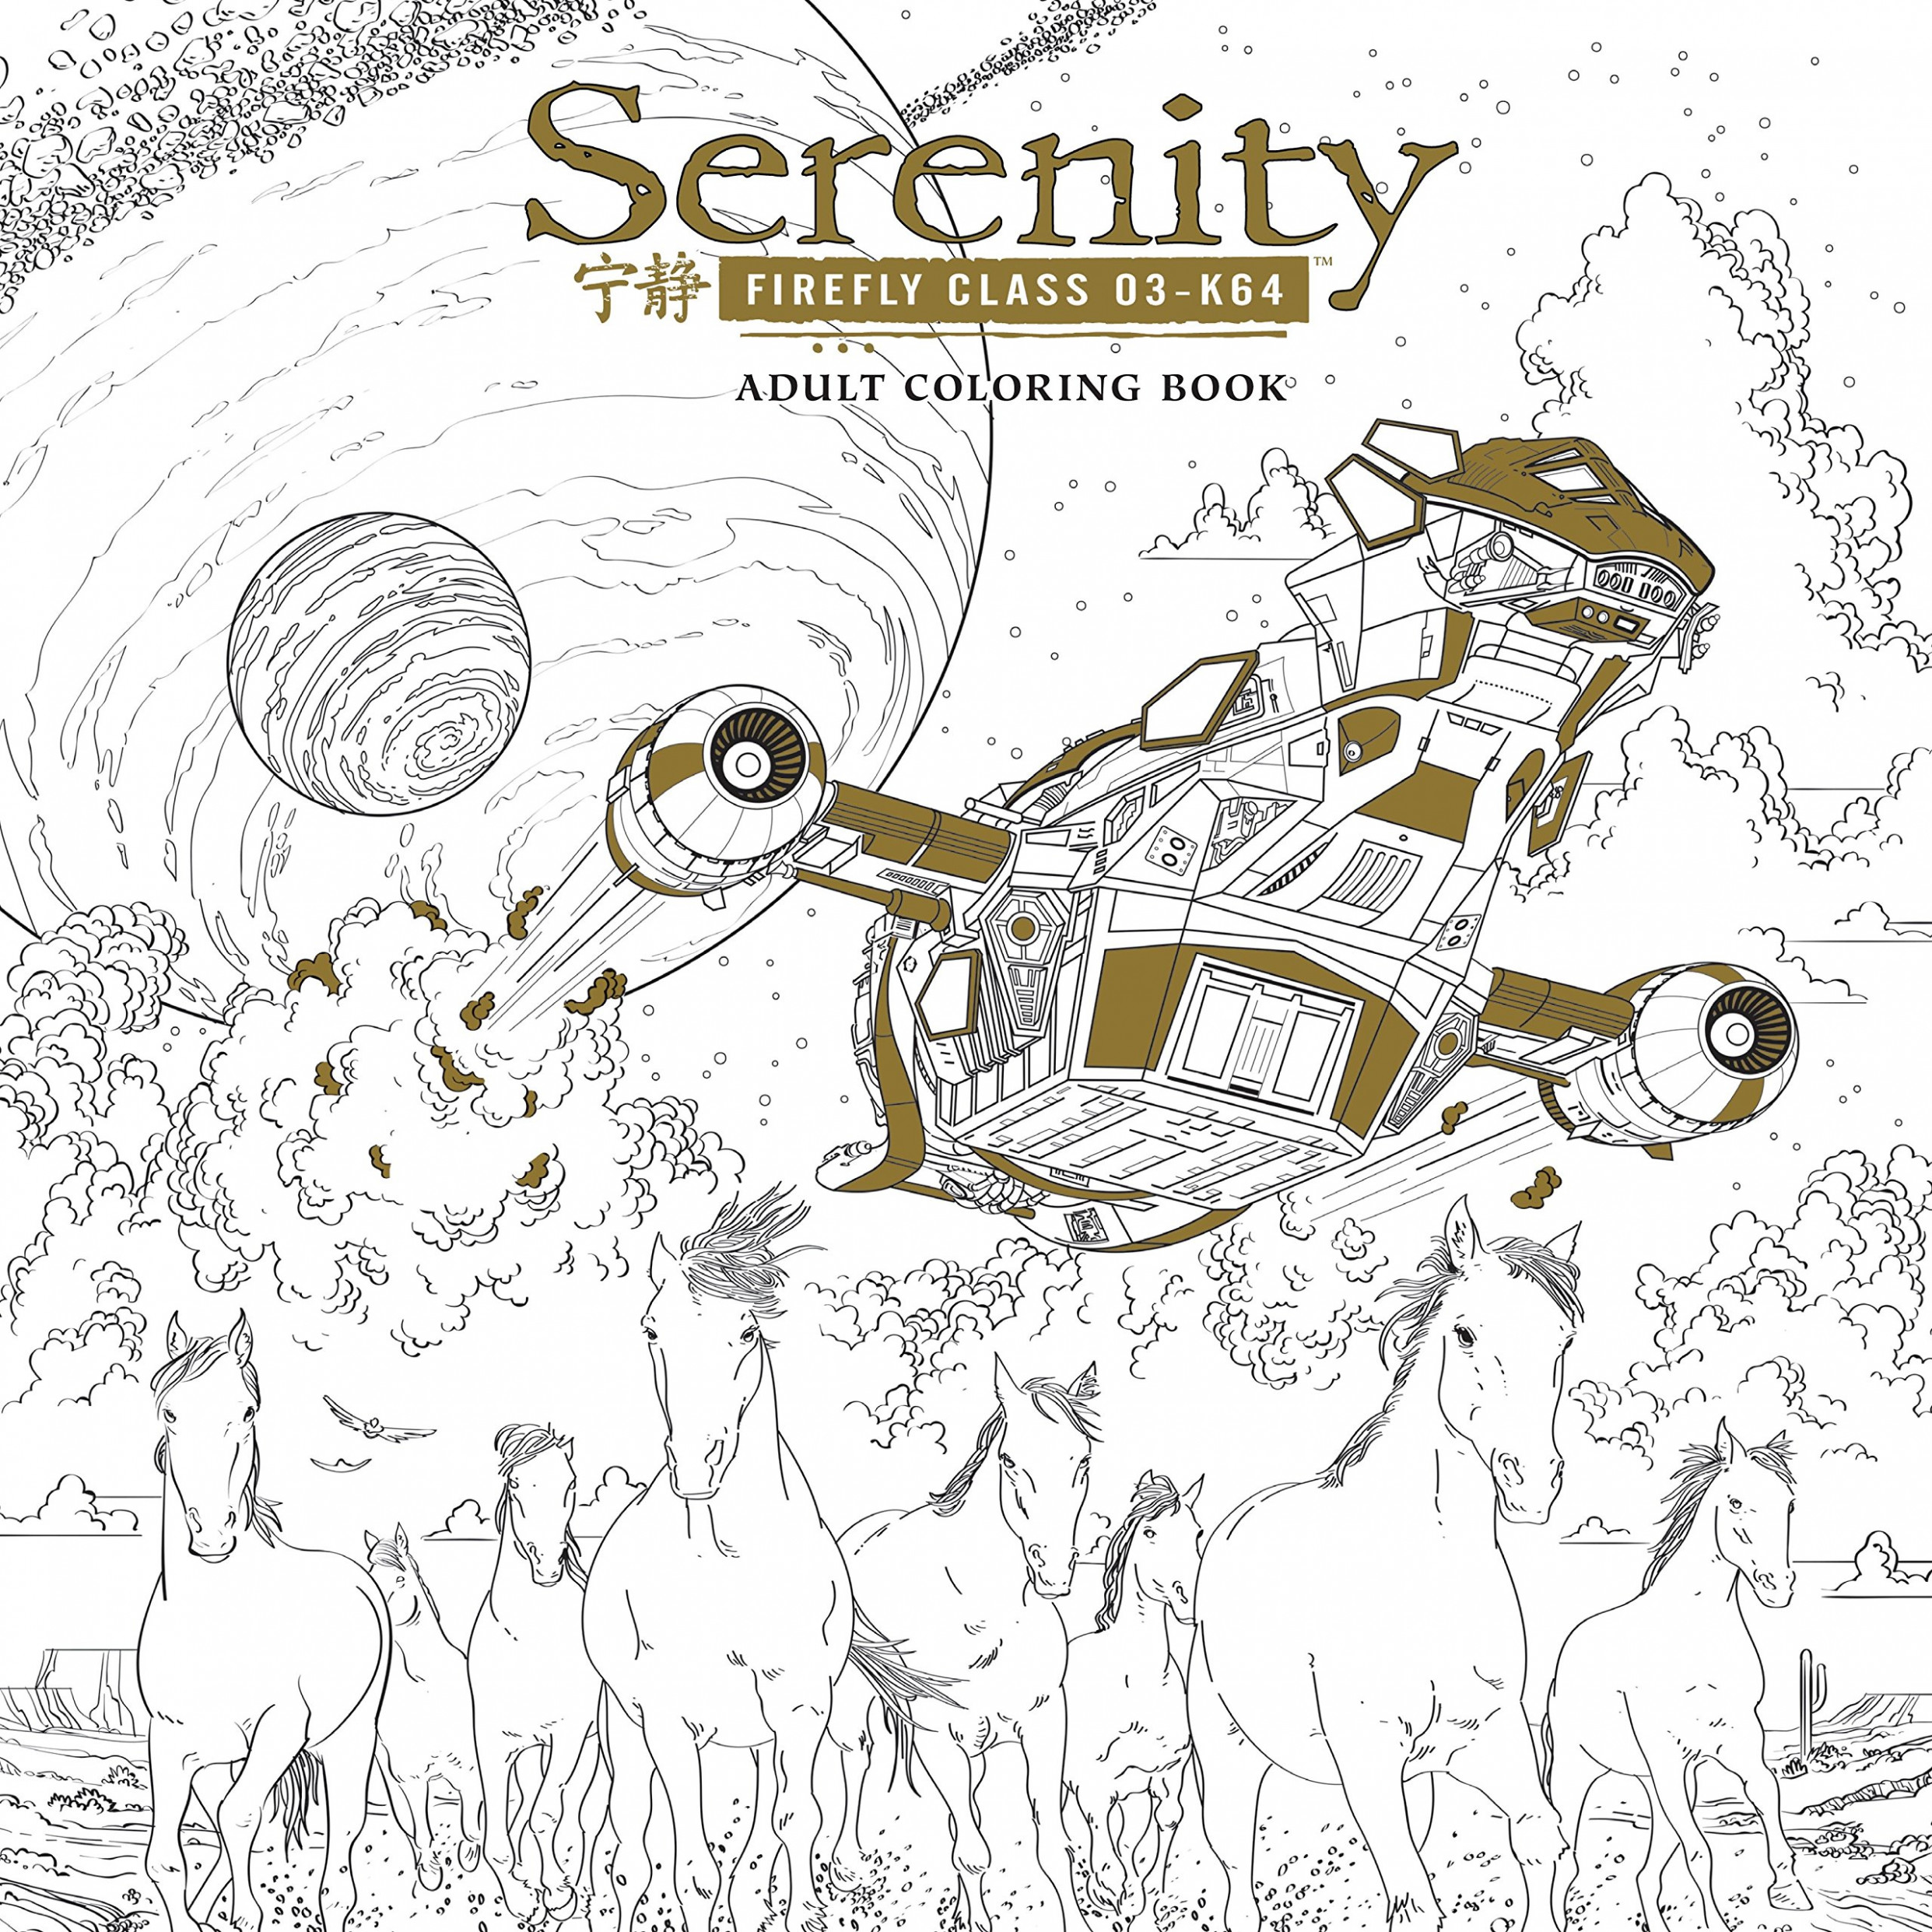 Amazon.com: Serenity Adult Coloring Book (12): Fox: Books